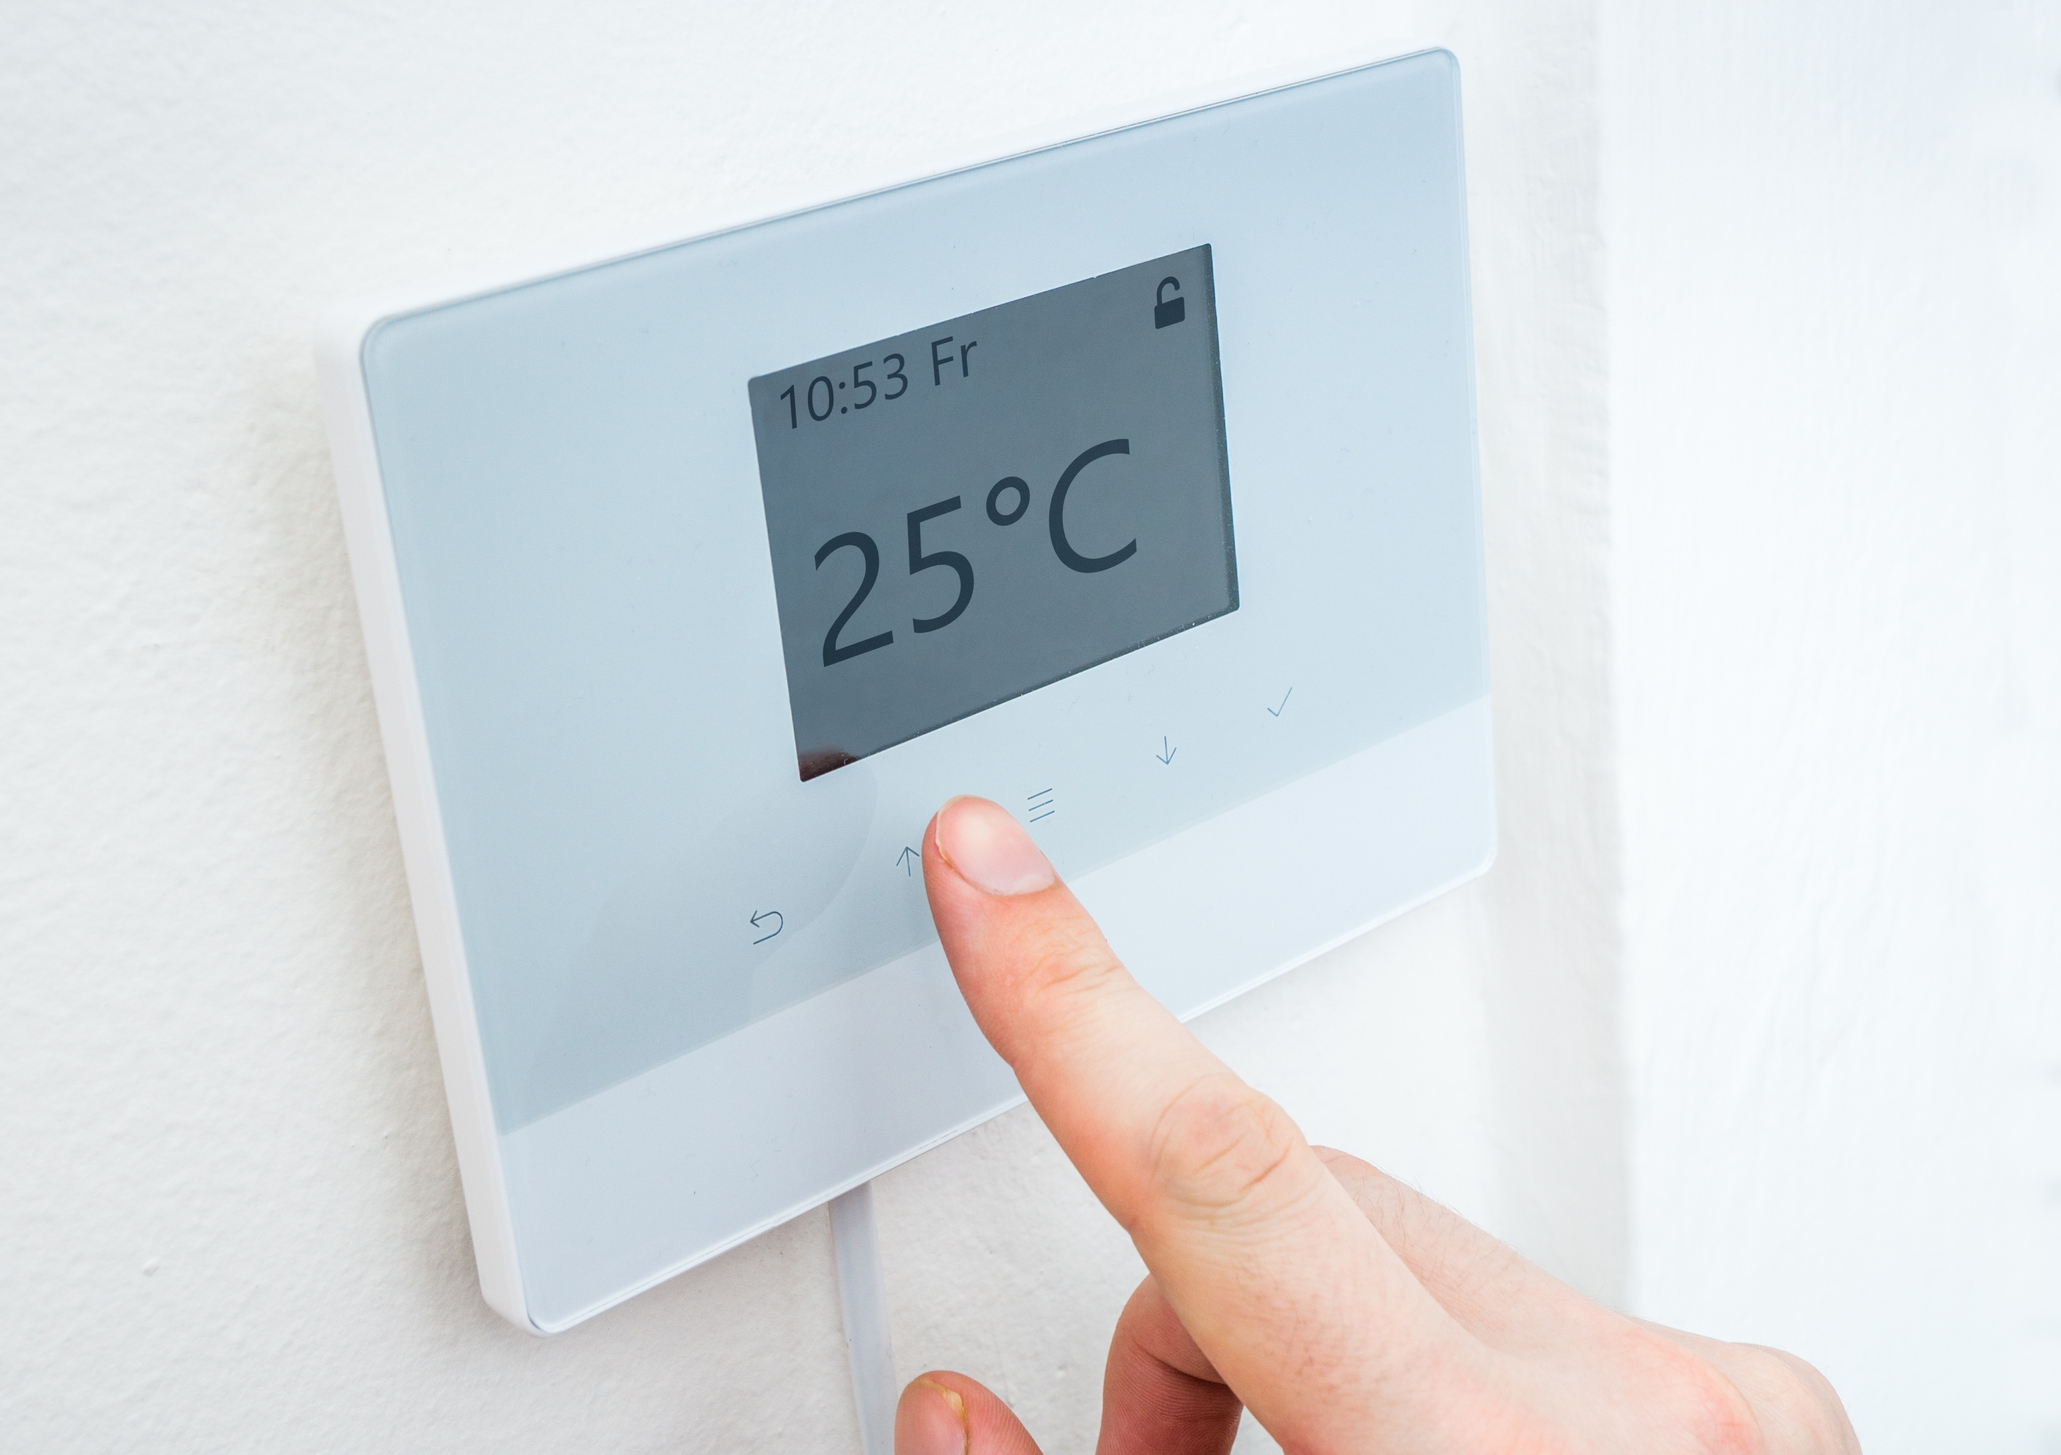 Heating concept. Adjusting temperature on digital central thermostat control.